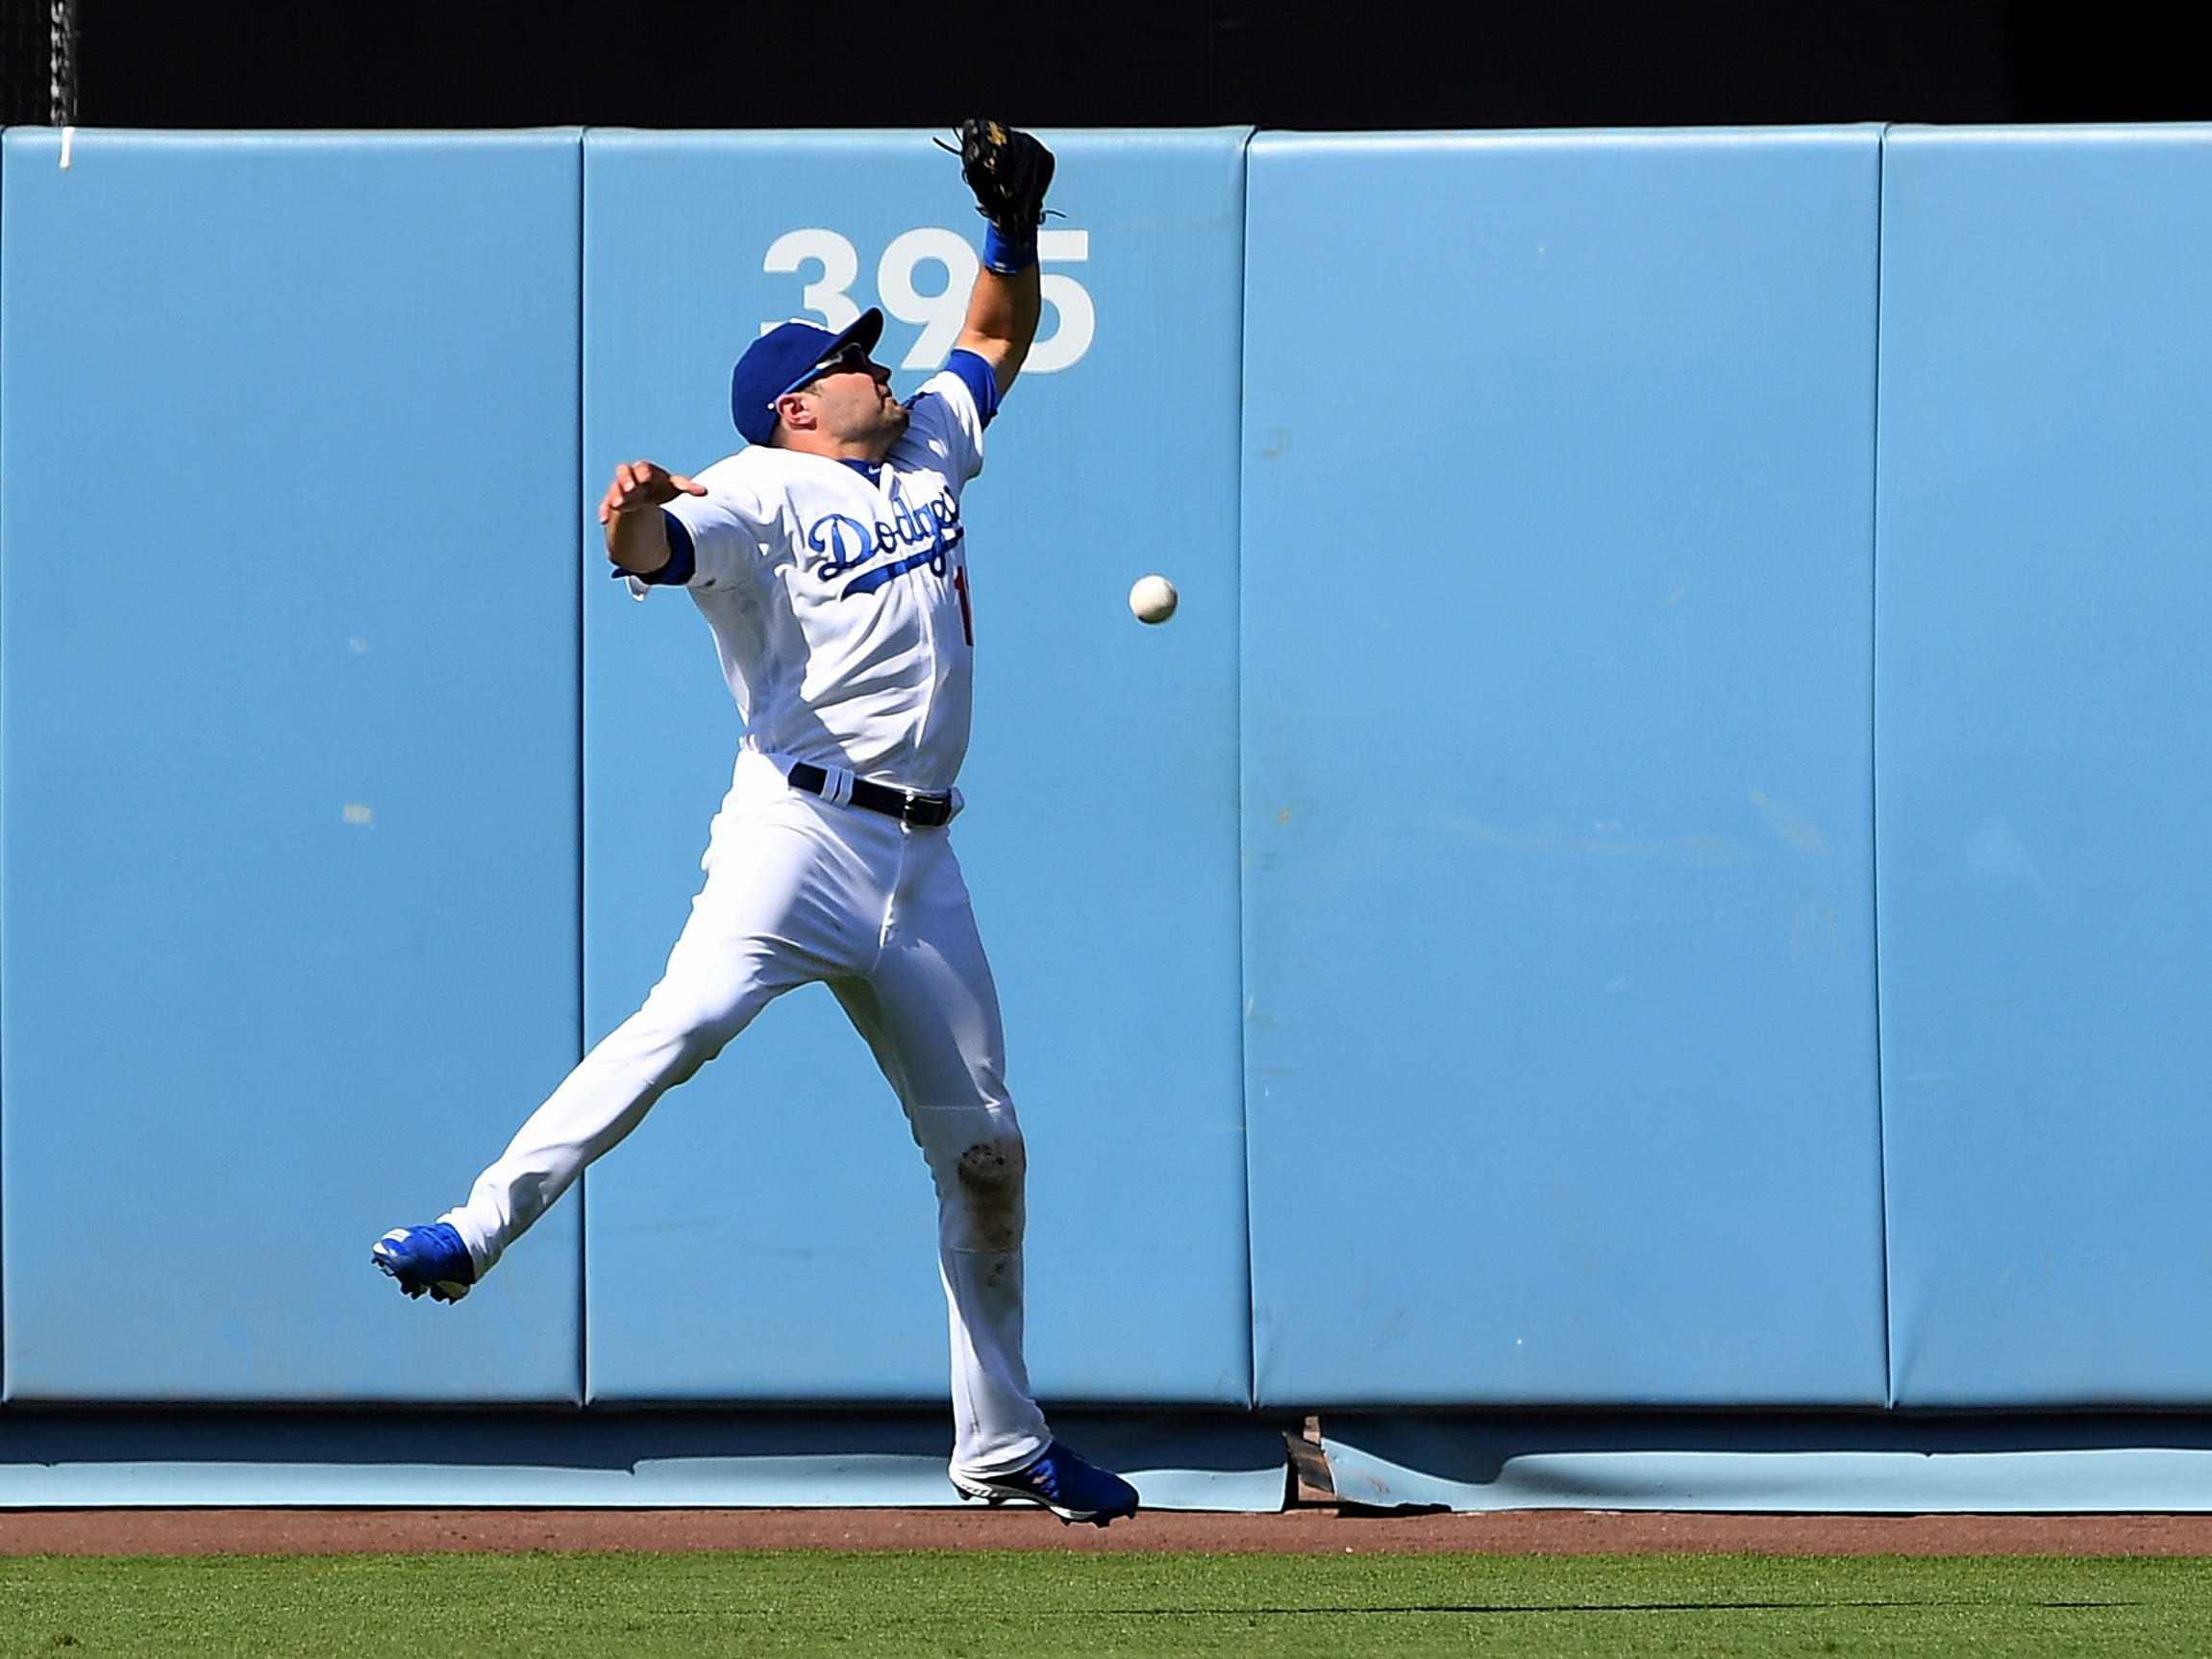 Mar 31, 2019; Los Angeles, CA, USA; Los Angeles Dodgers center fielder A.J. Pollock (11) leaps for a triple hit over his head by Arizona Diamondbacks shortstop Ketel Marte (4) in the eighth inning of the game at Dodger Stadium.